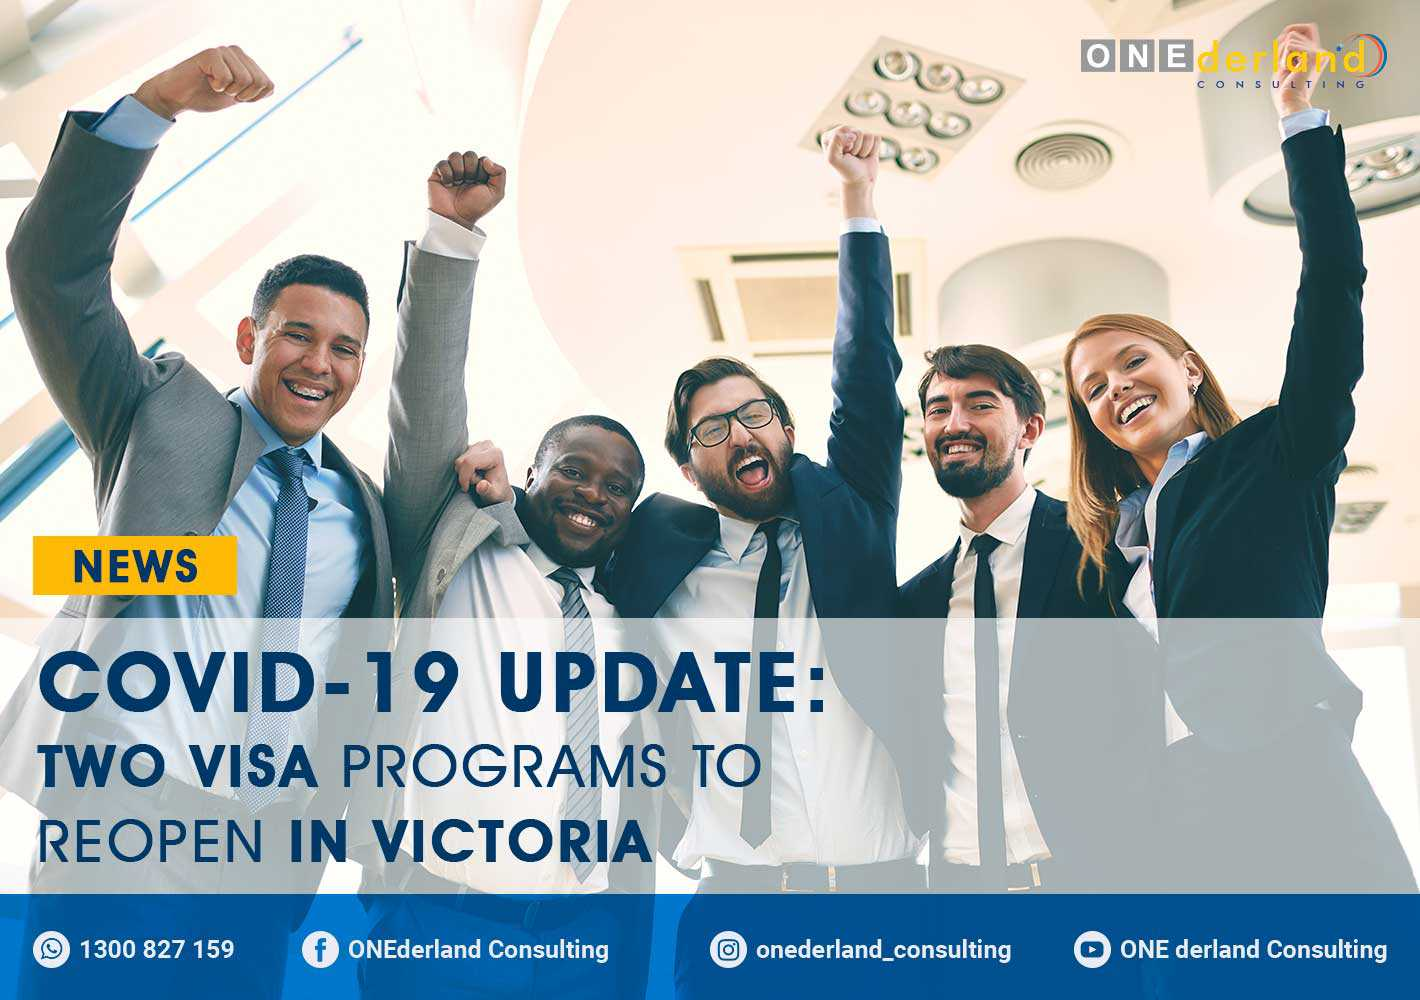 COVID-19 Update Two Visa Program to Reopen In Victoria